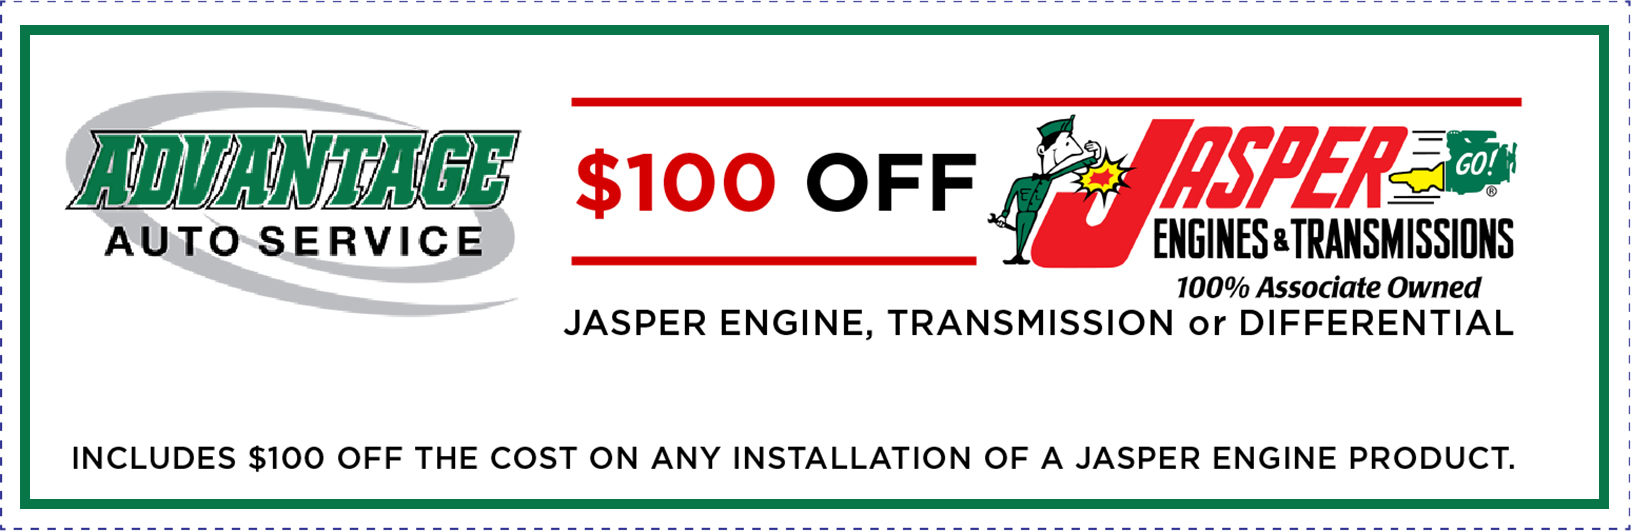 jasper engine, transmission, differnetial labor only $100 off coupon